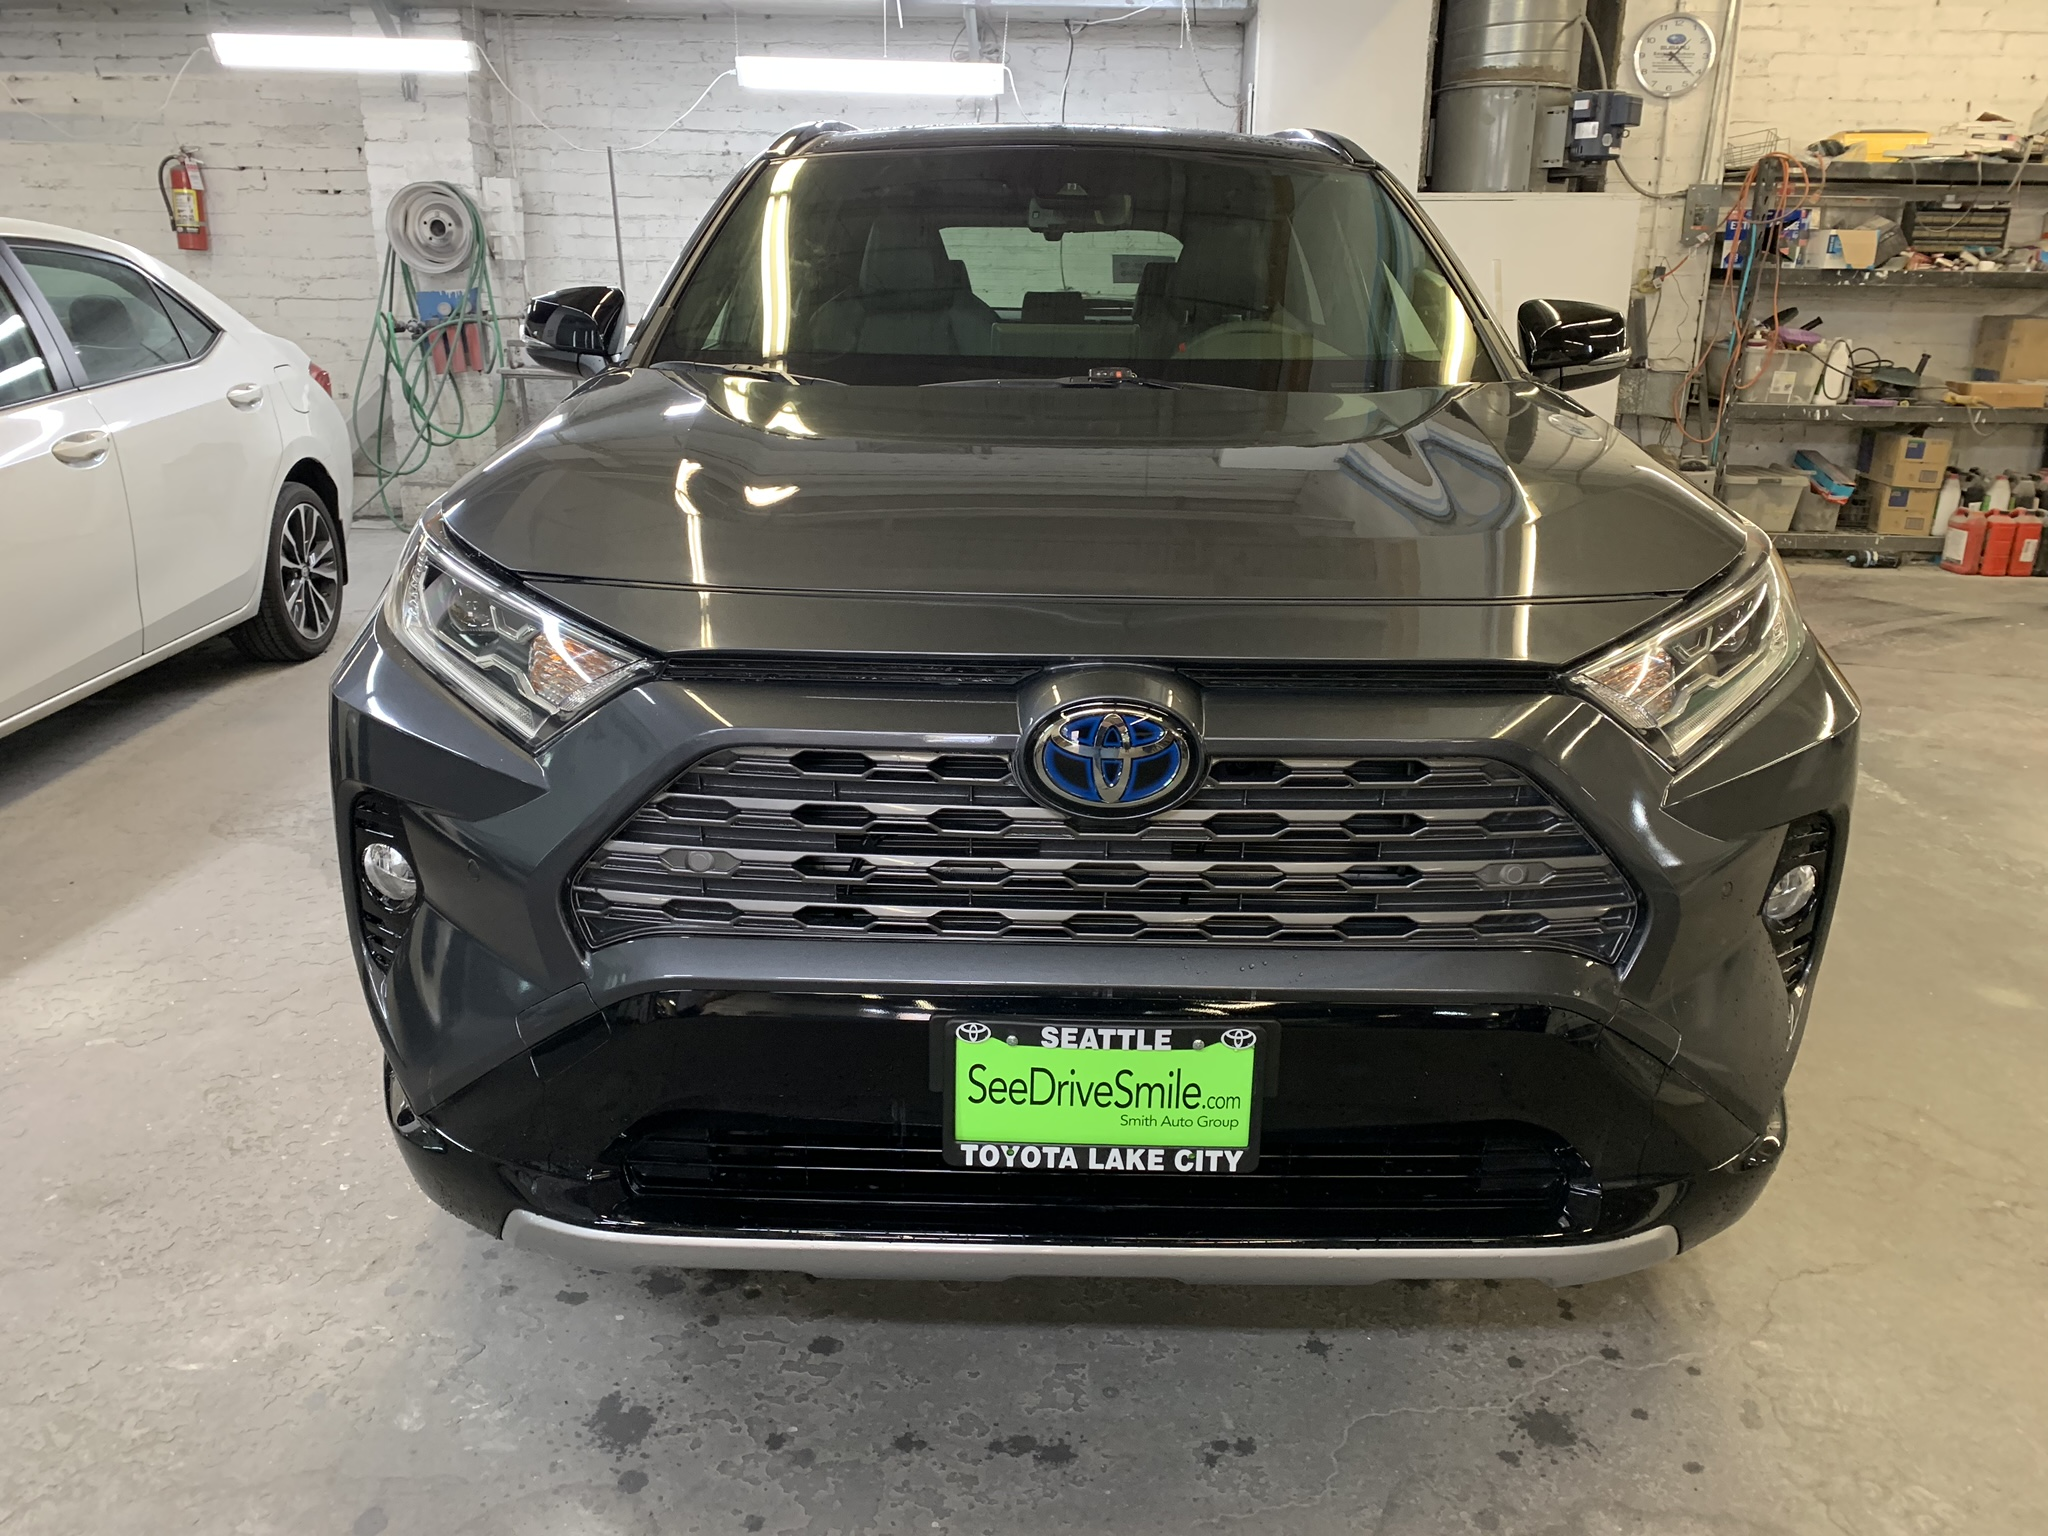 2019 Totoya Rav4 After